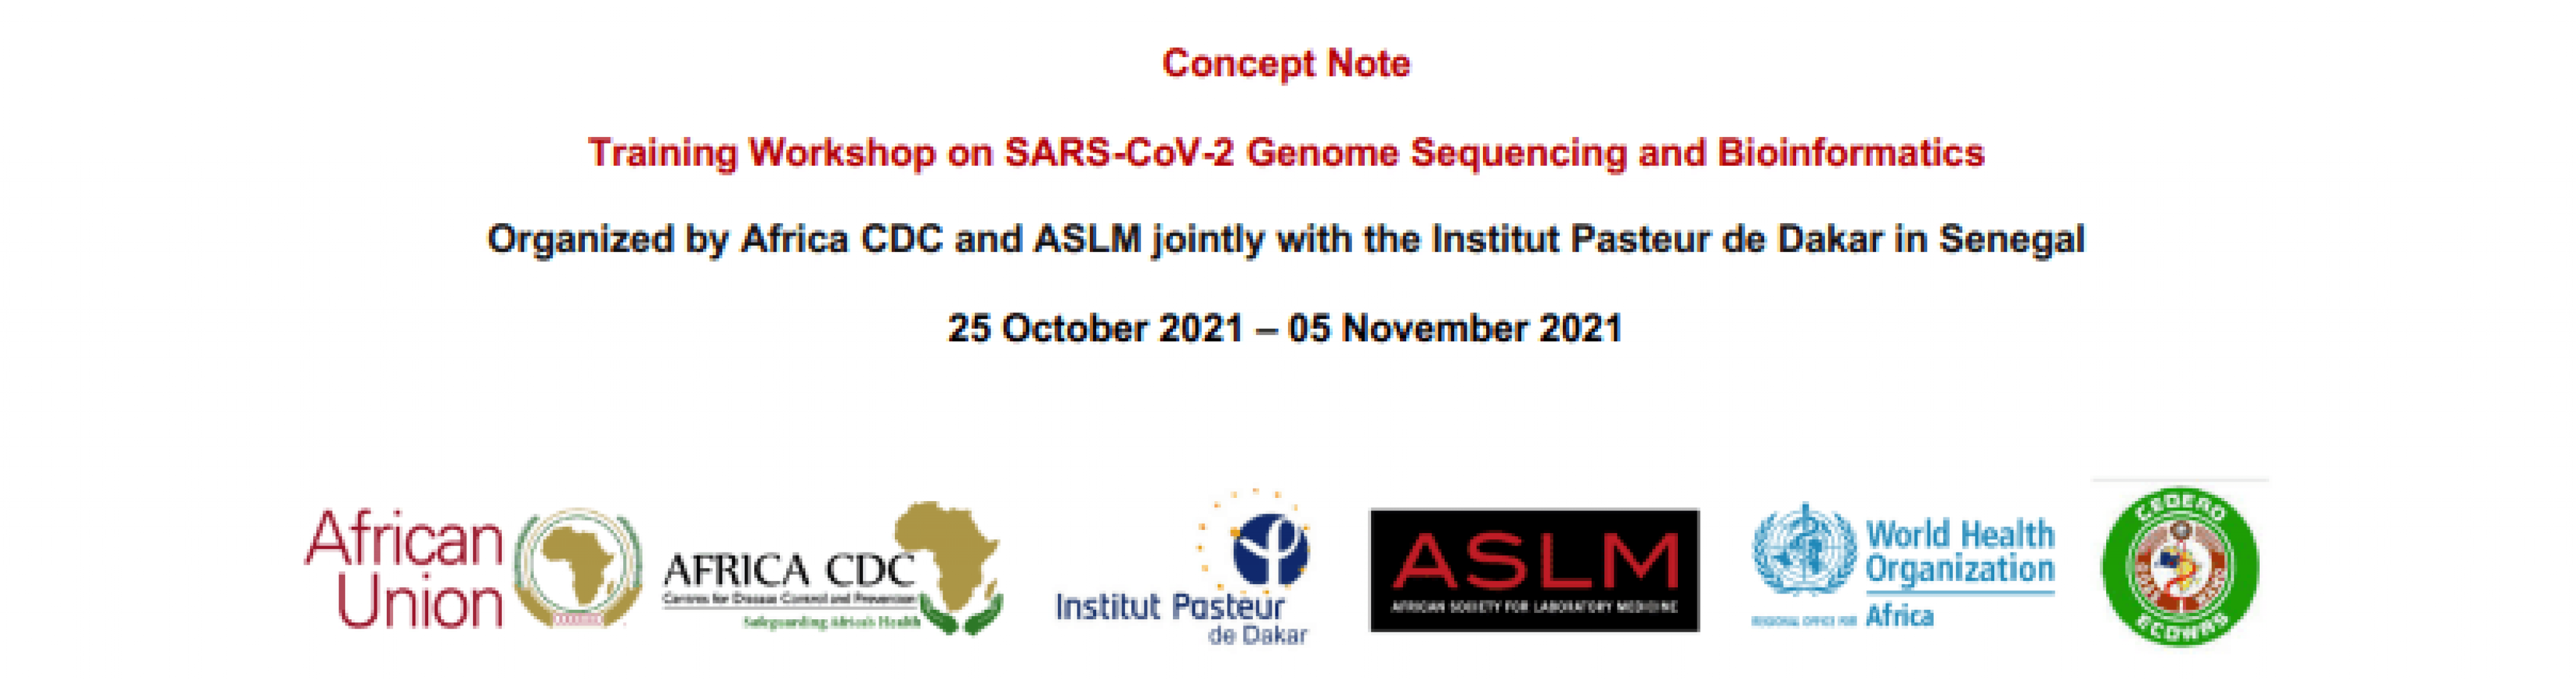 Training Workshop on SARS-CoV-2 Genome Sequencing and Bioinformatics